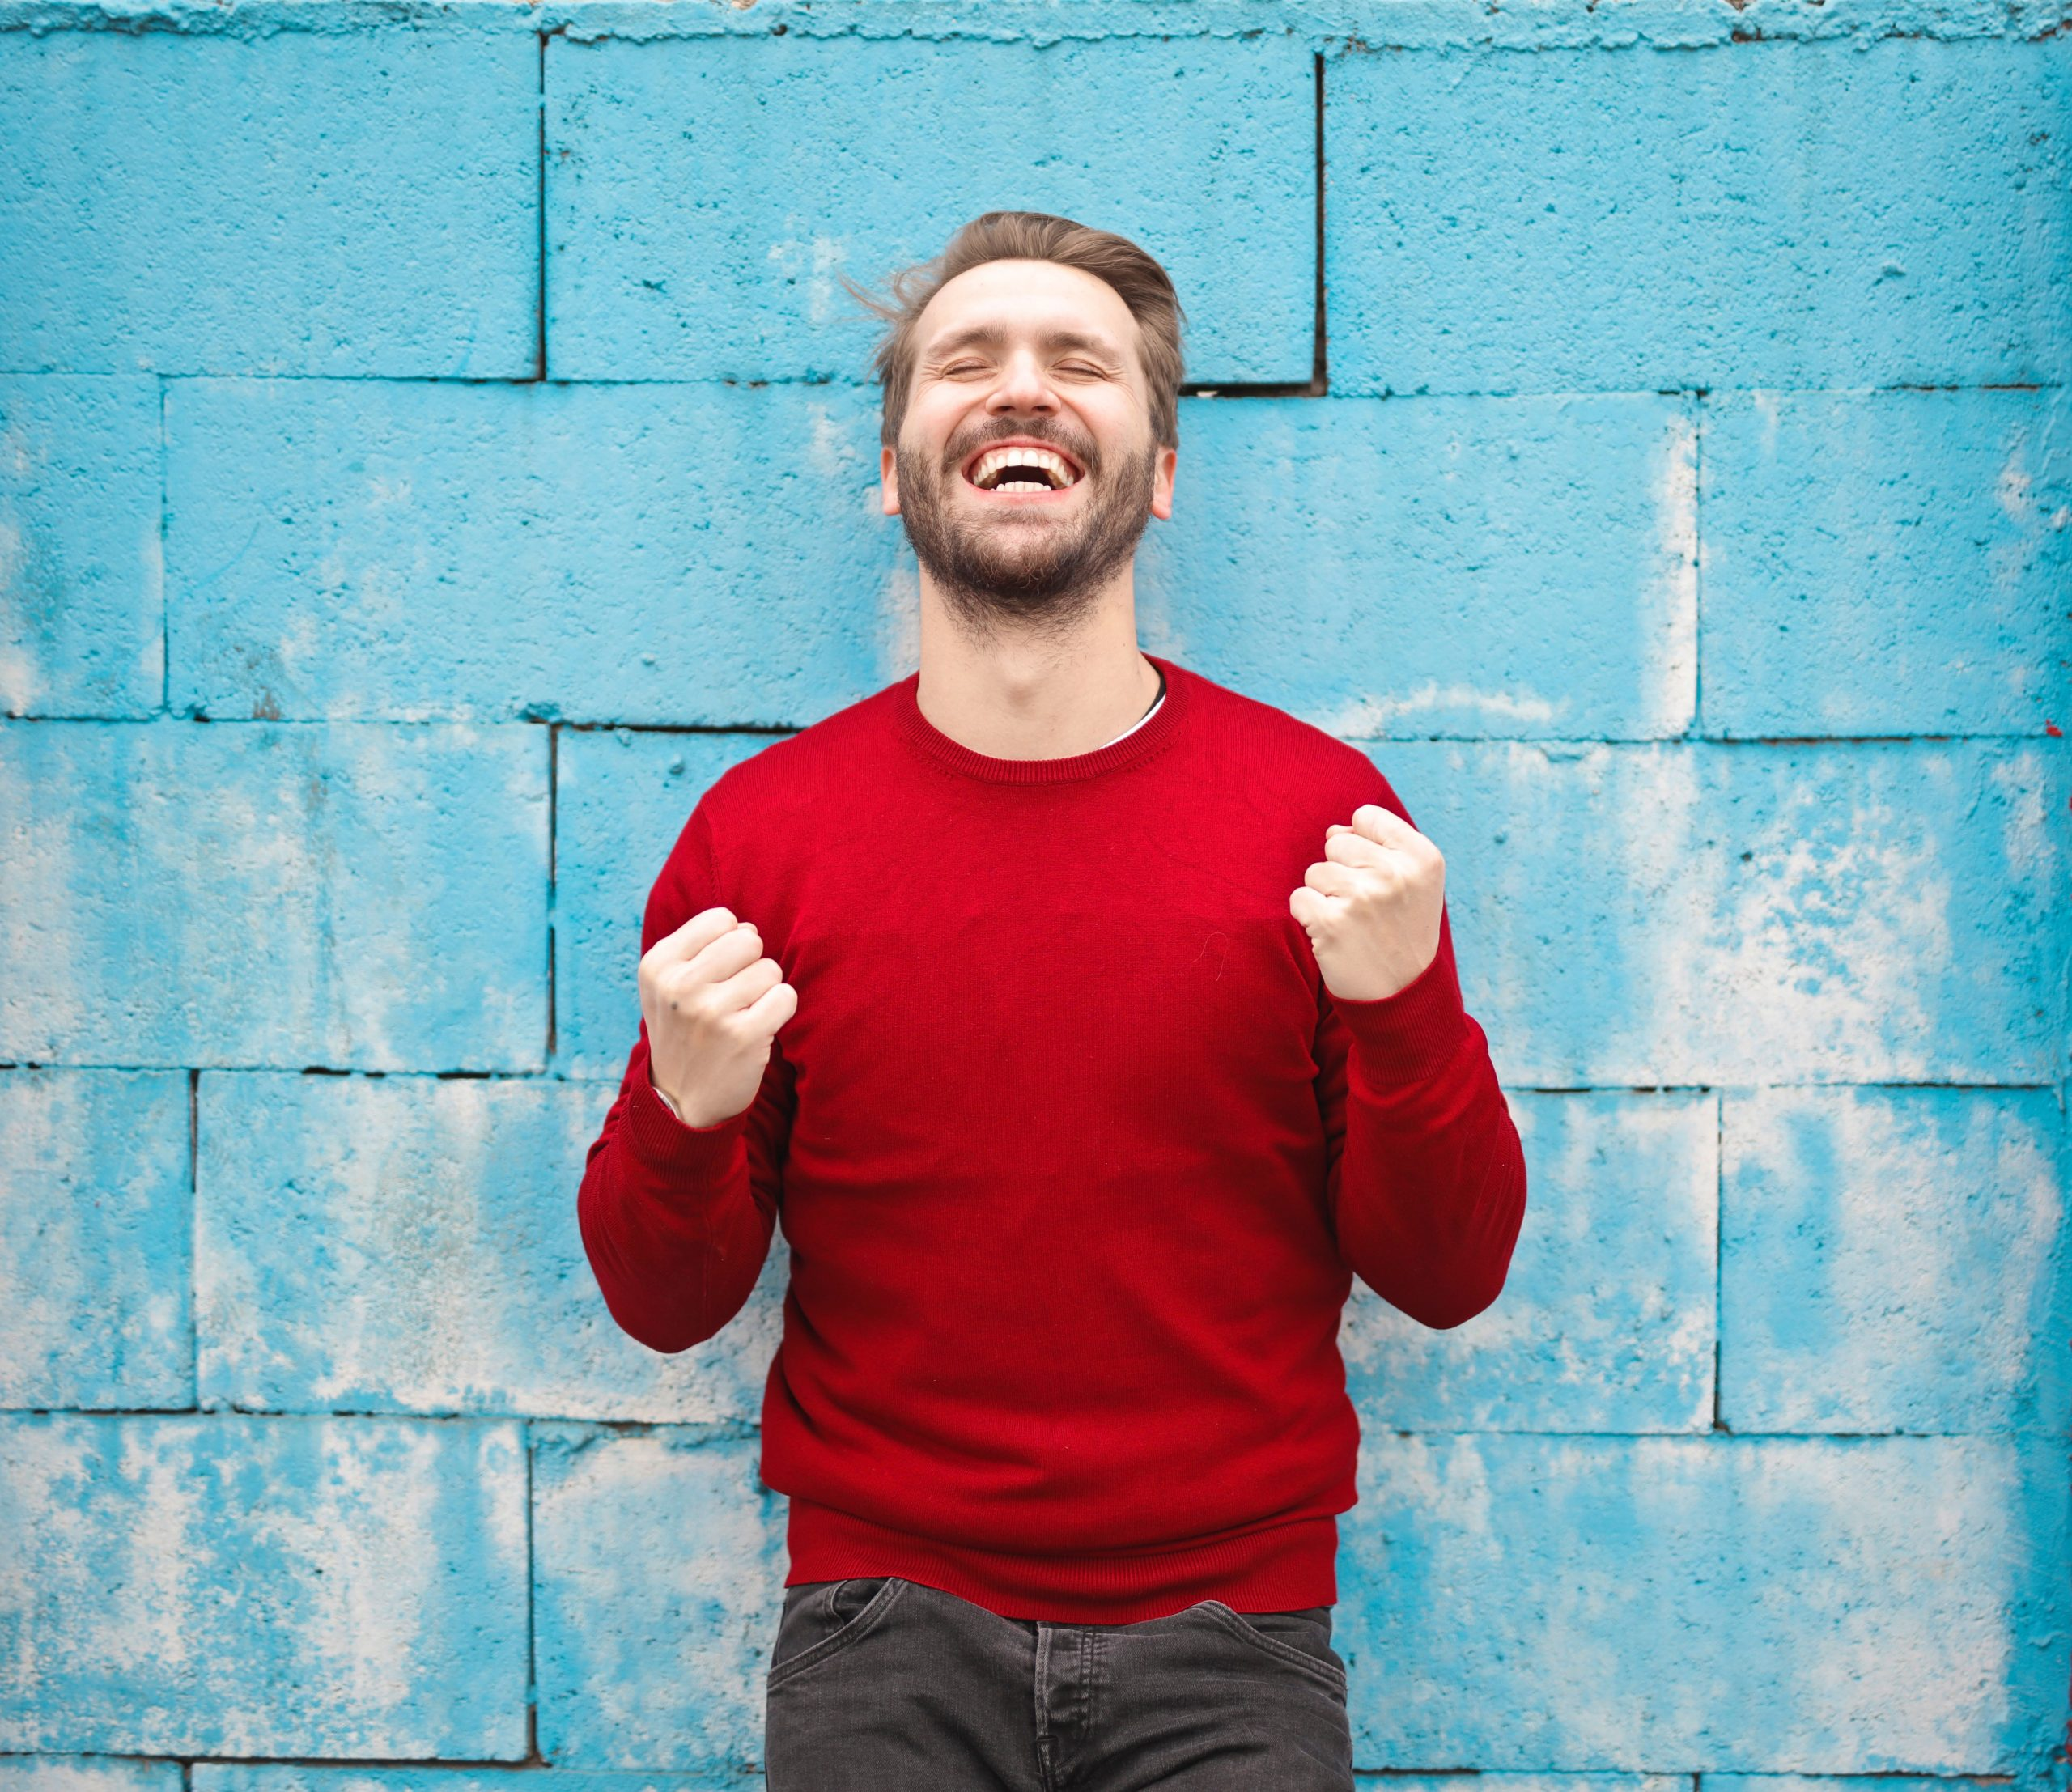 man in a long-sleeved red shirt laughing heartily while standing in front of a blue wall, coping strategies, healthy coping mechanisms